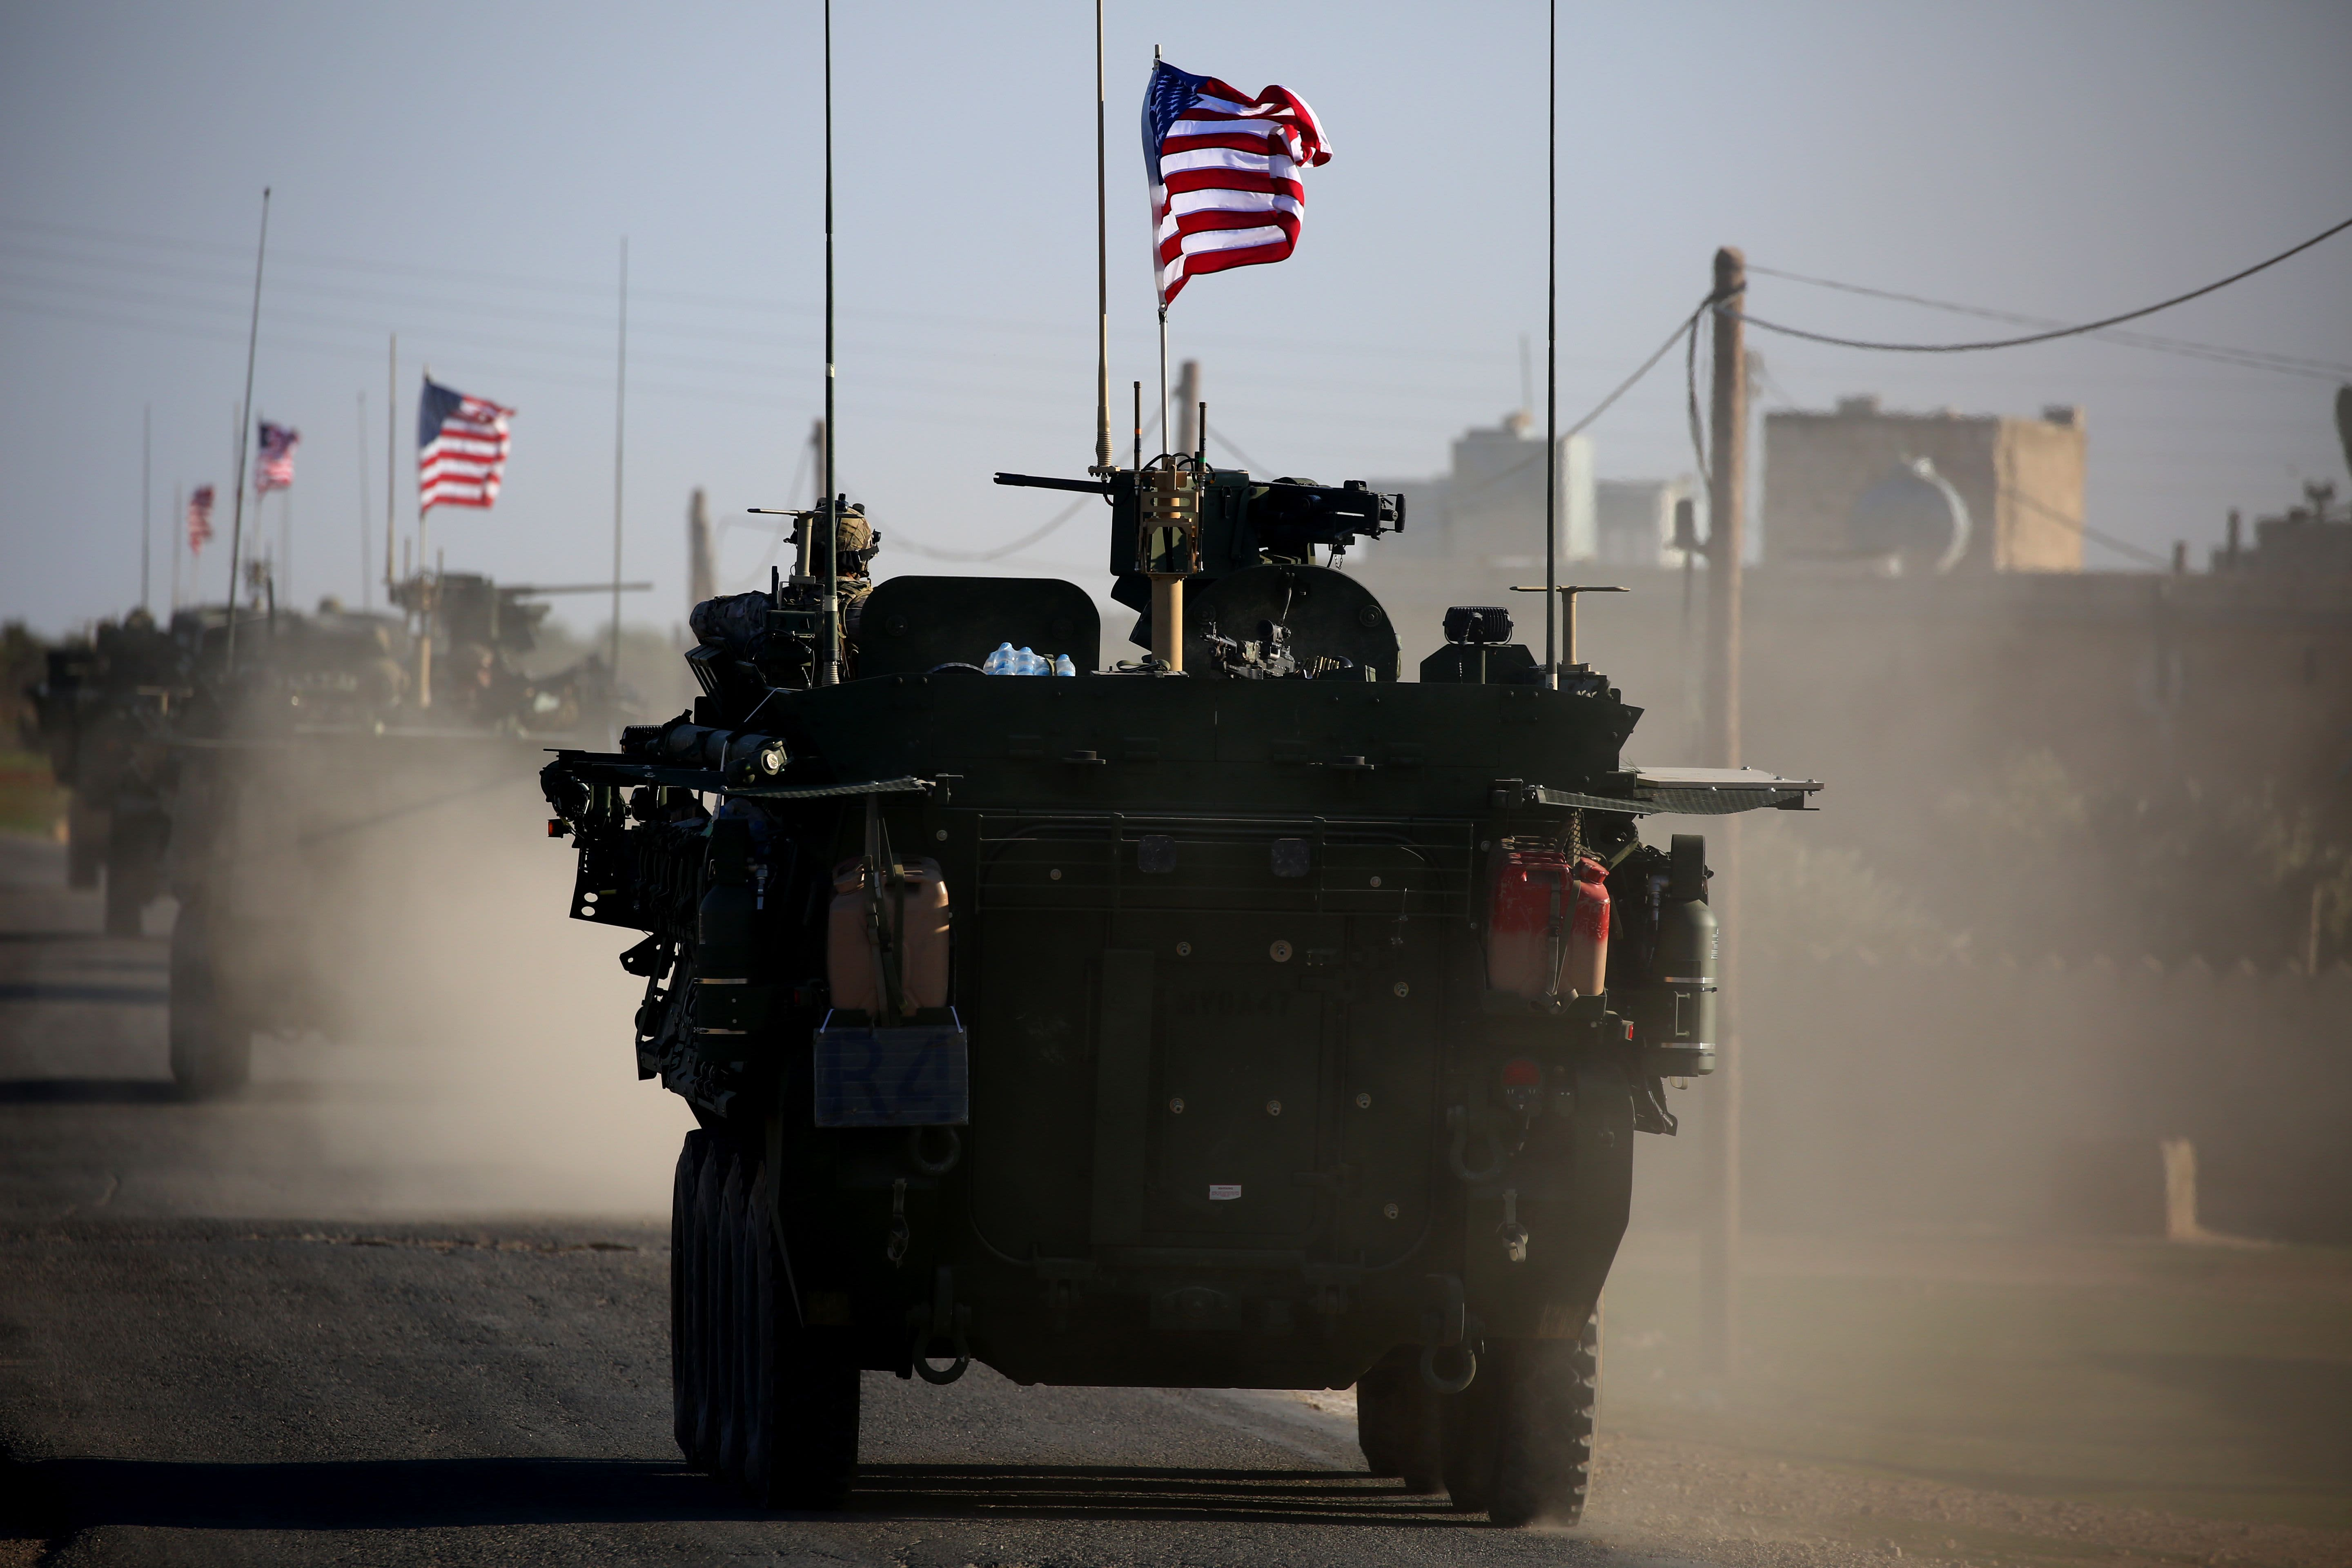 Withdrawal of US troops in Syria strengthened ISIS resurgence, DOD watchdog says